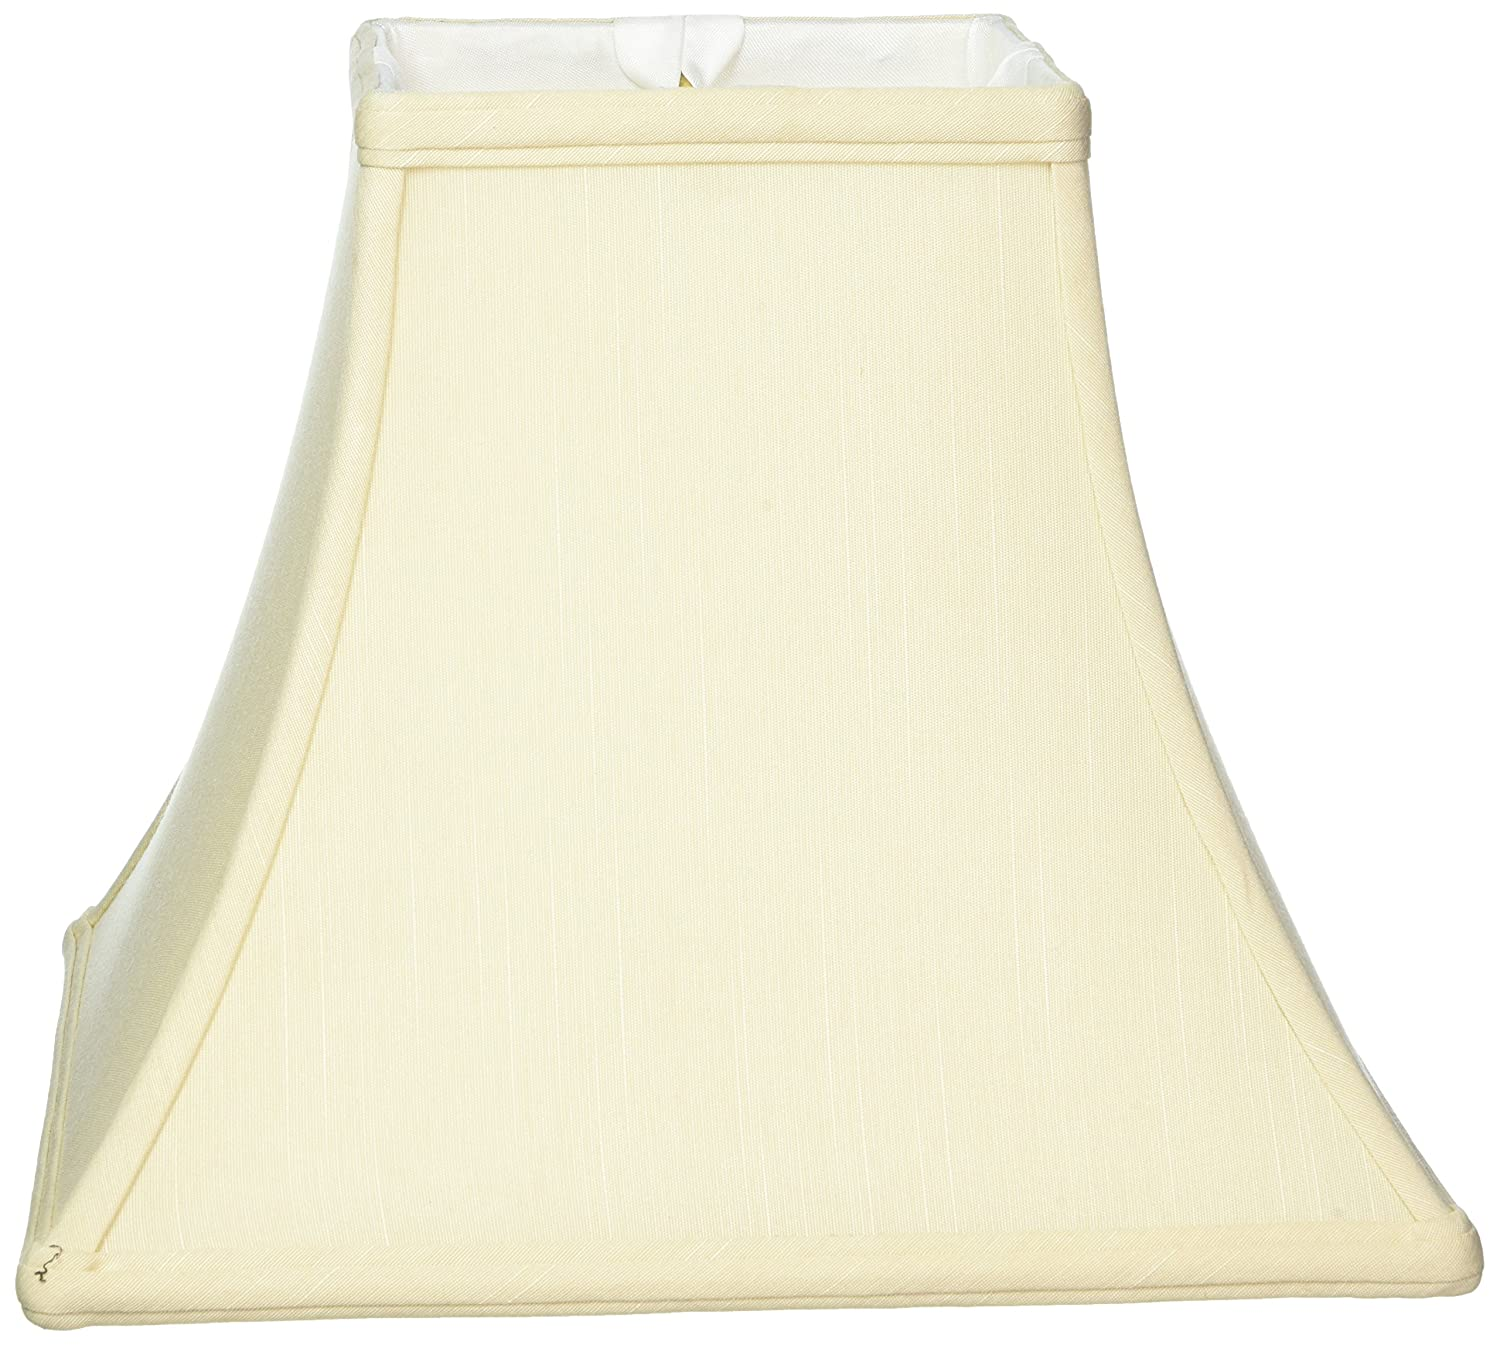 "Royal Designs Square Bell Basic Lamp Shade, Beige, 5 x 10 x 9 by ""Royal Designs, Inc"" B00HVGDDXW  ベージュ 5 x 10 x 9"